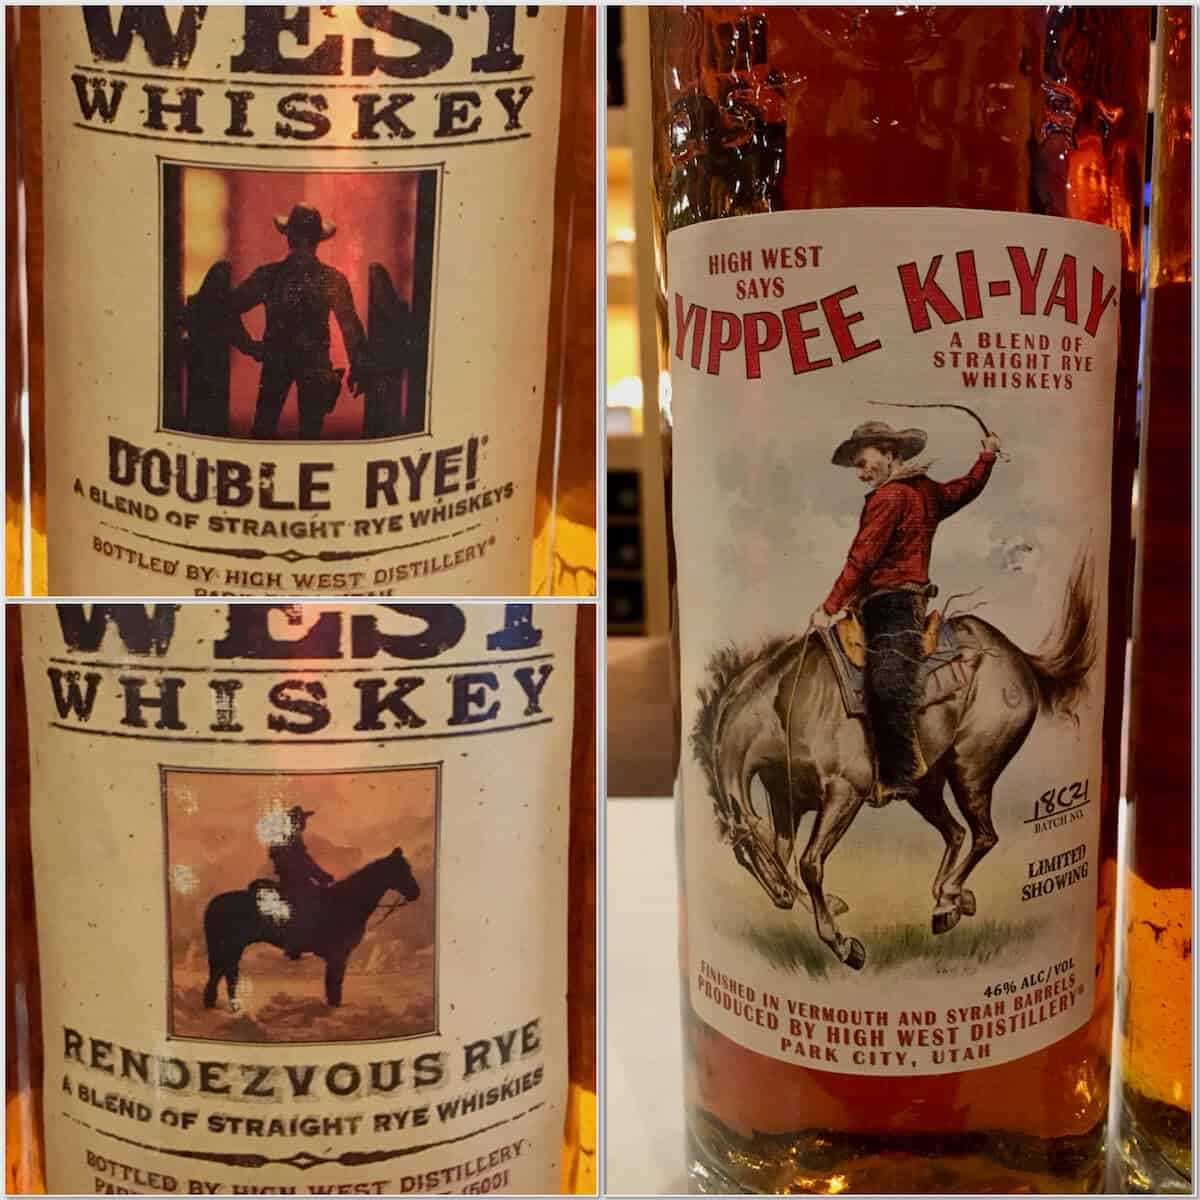 Collage of High West Double rye, Rendezvous Rye, & Yippee Ki-Yay bottles.